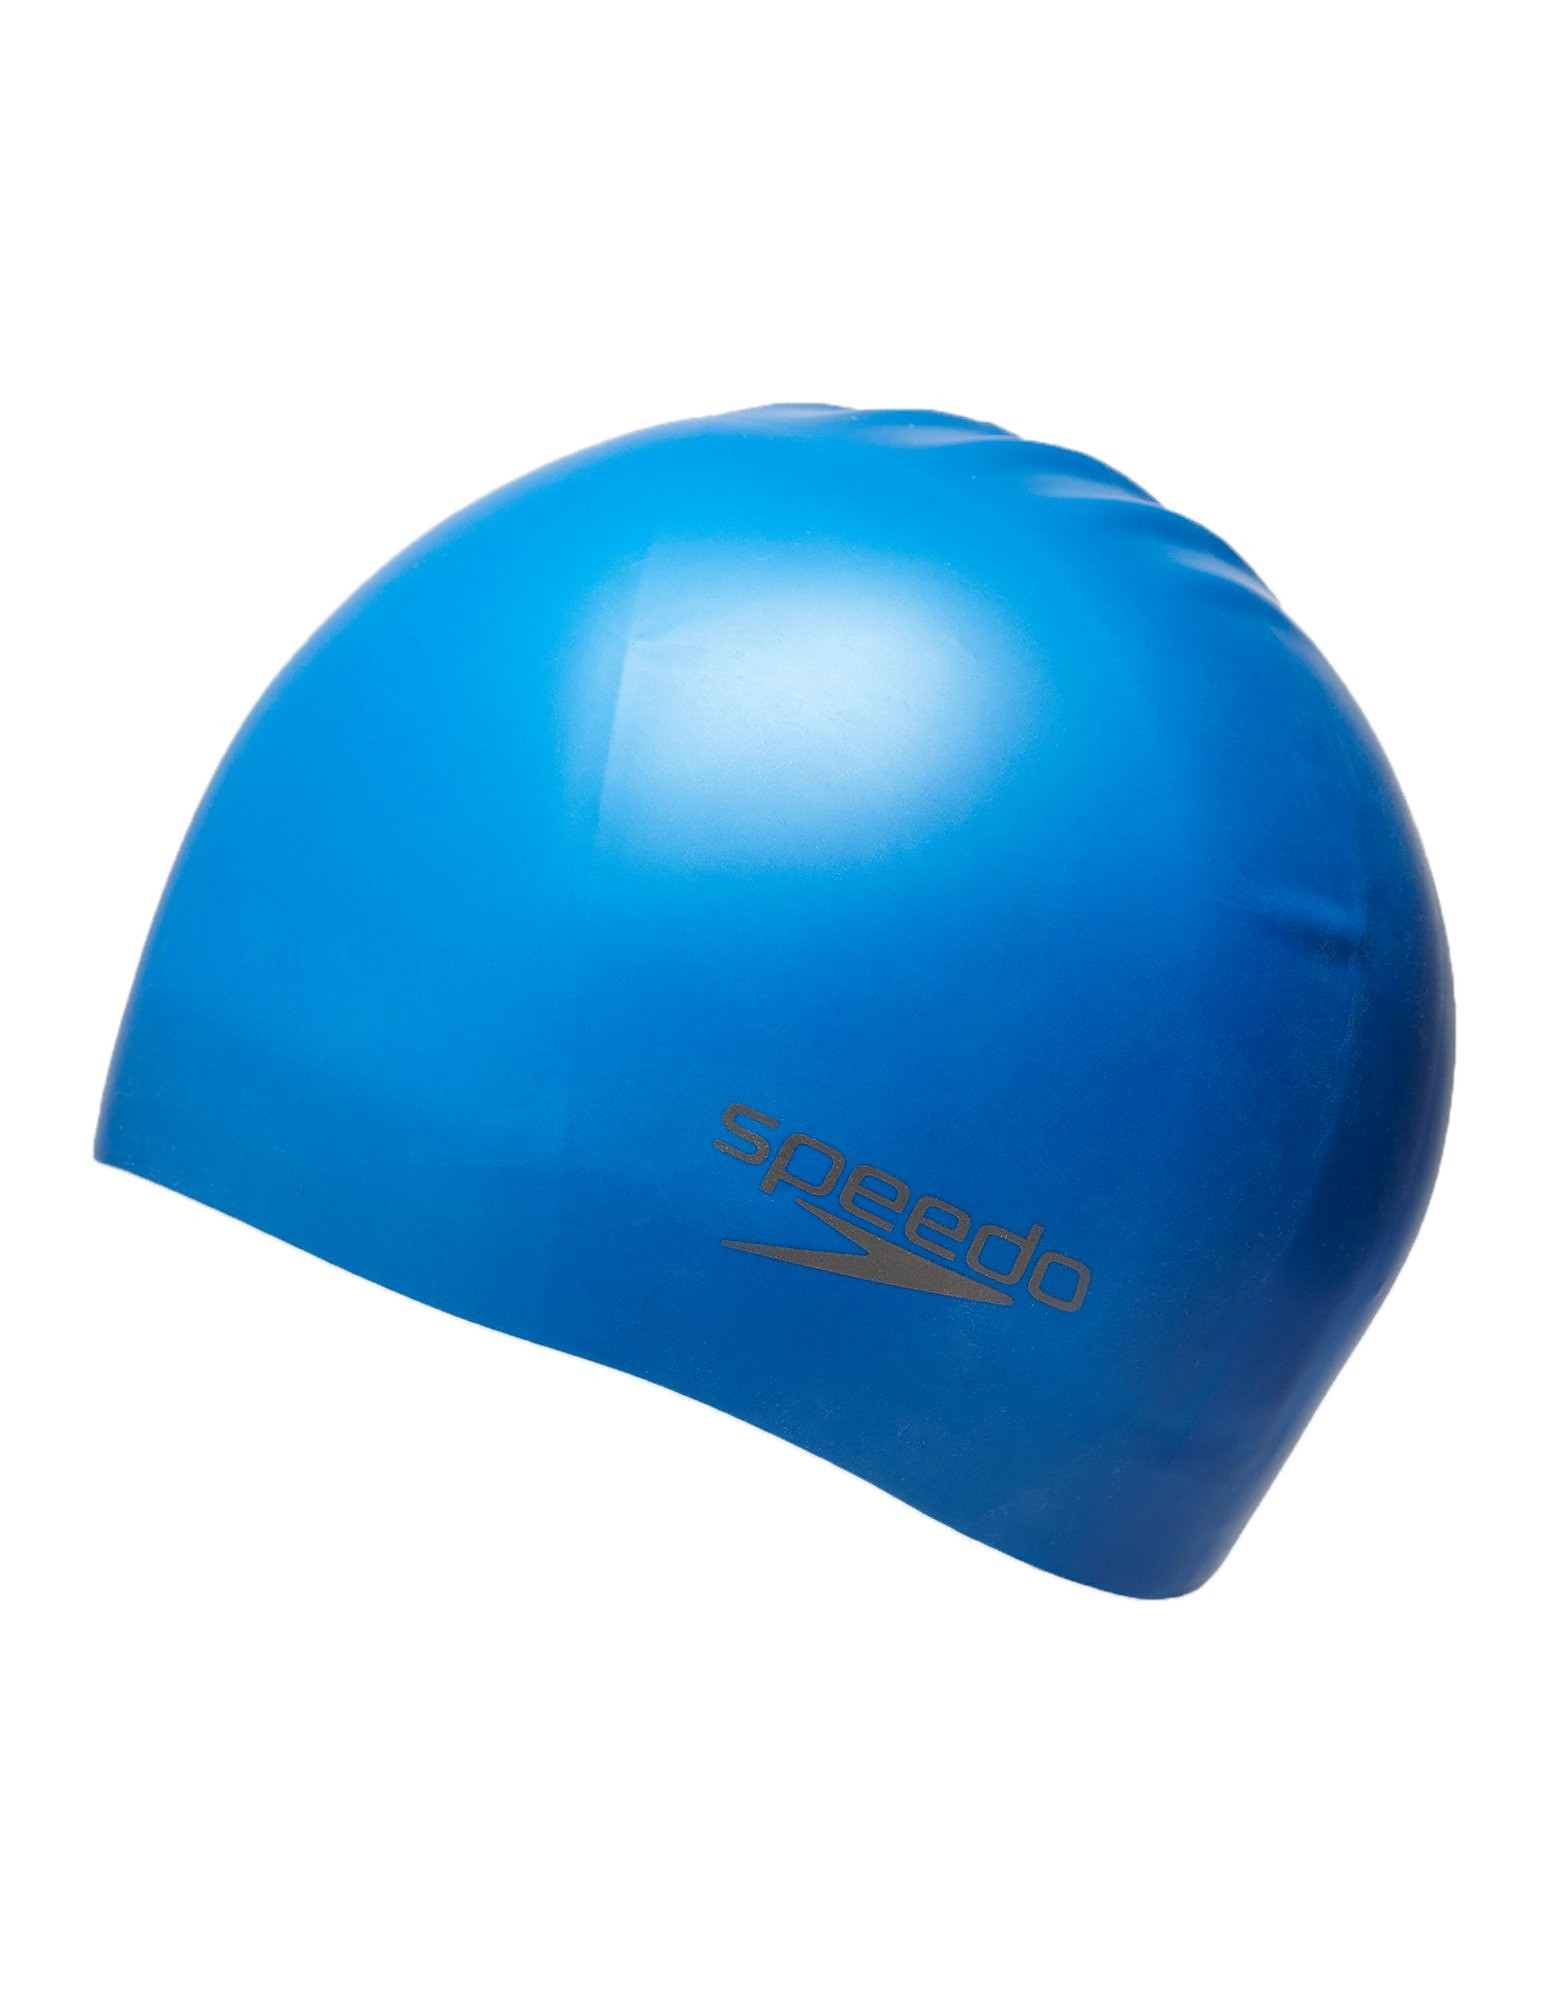 Speedo Plain Moulded Cap